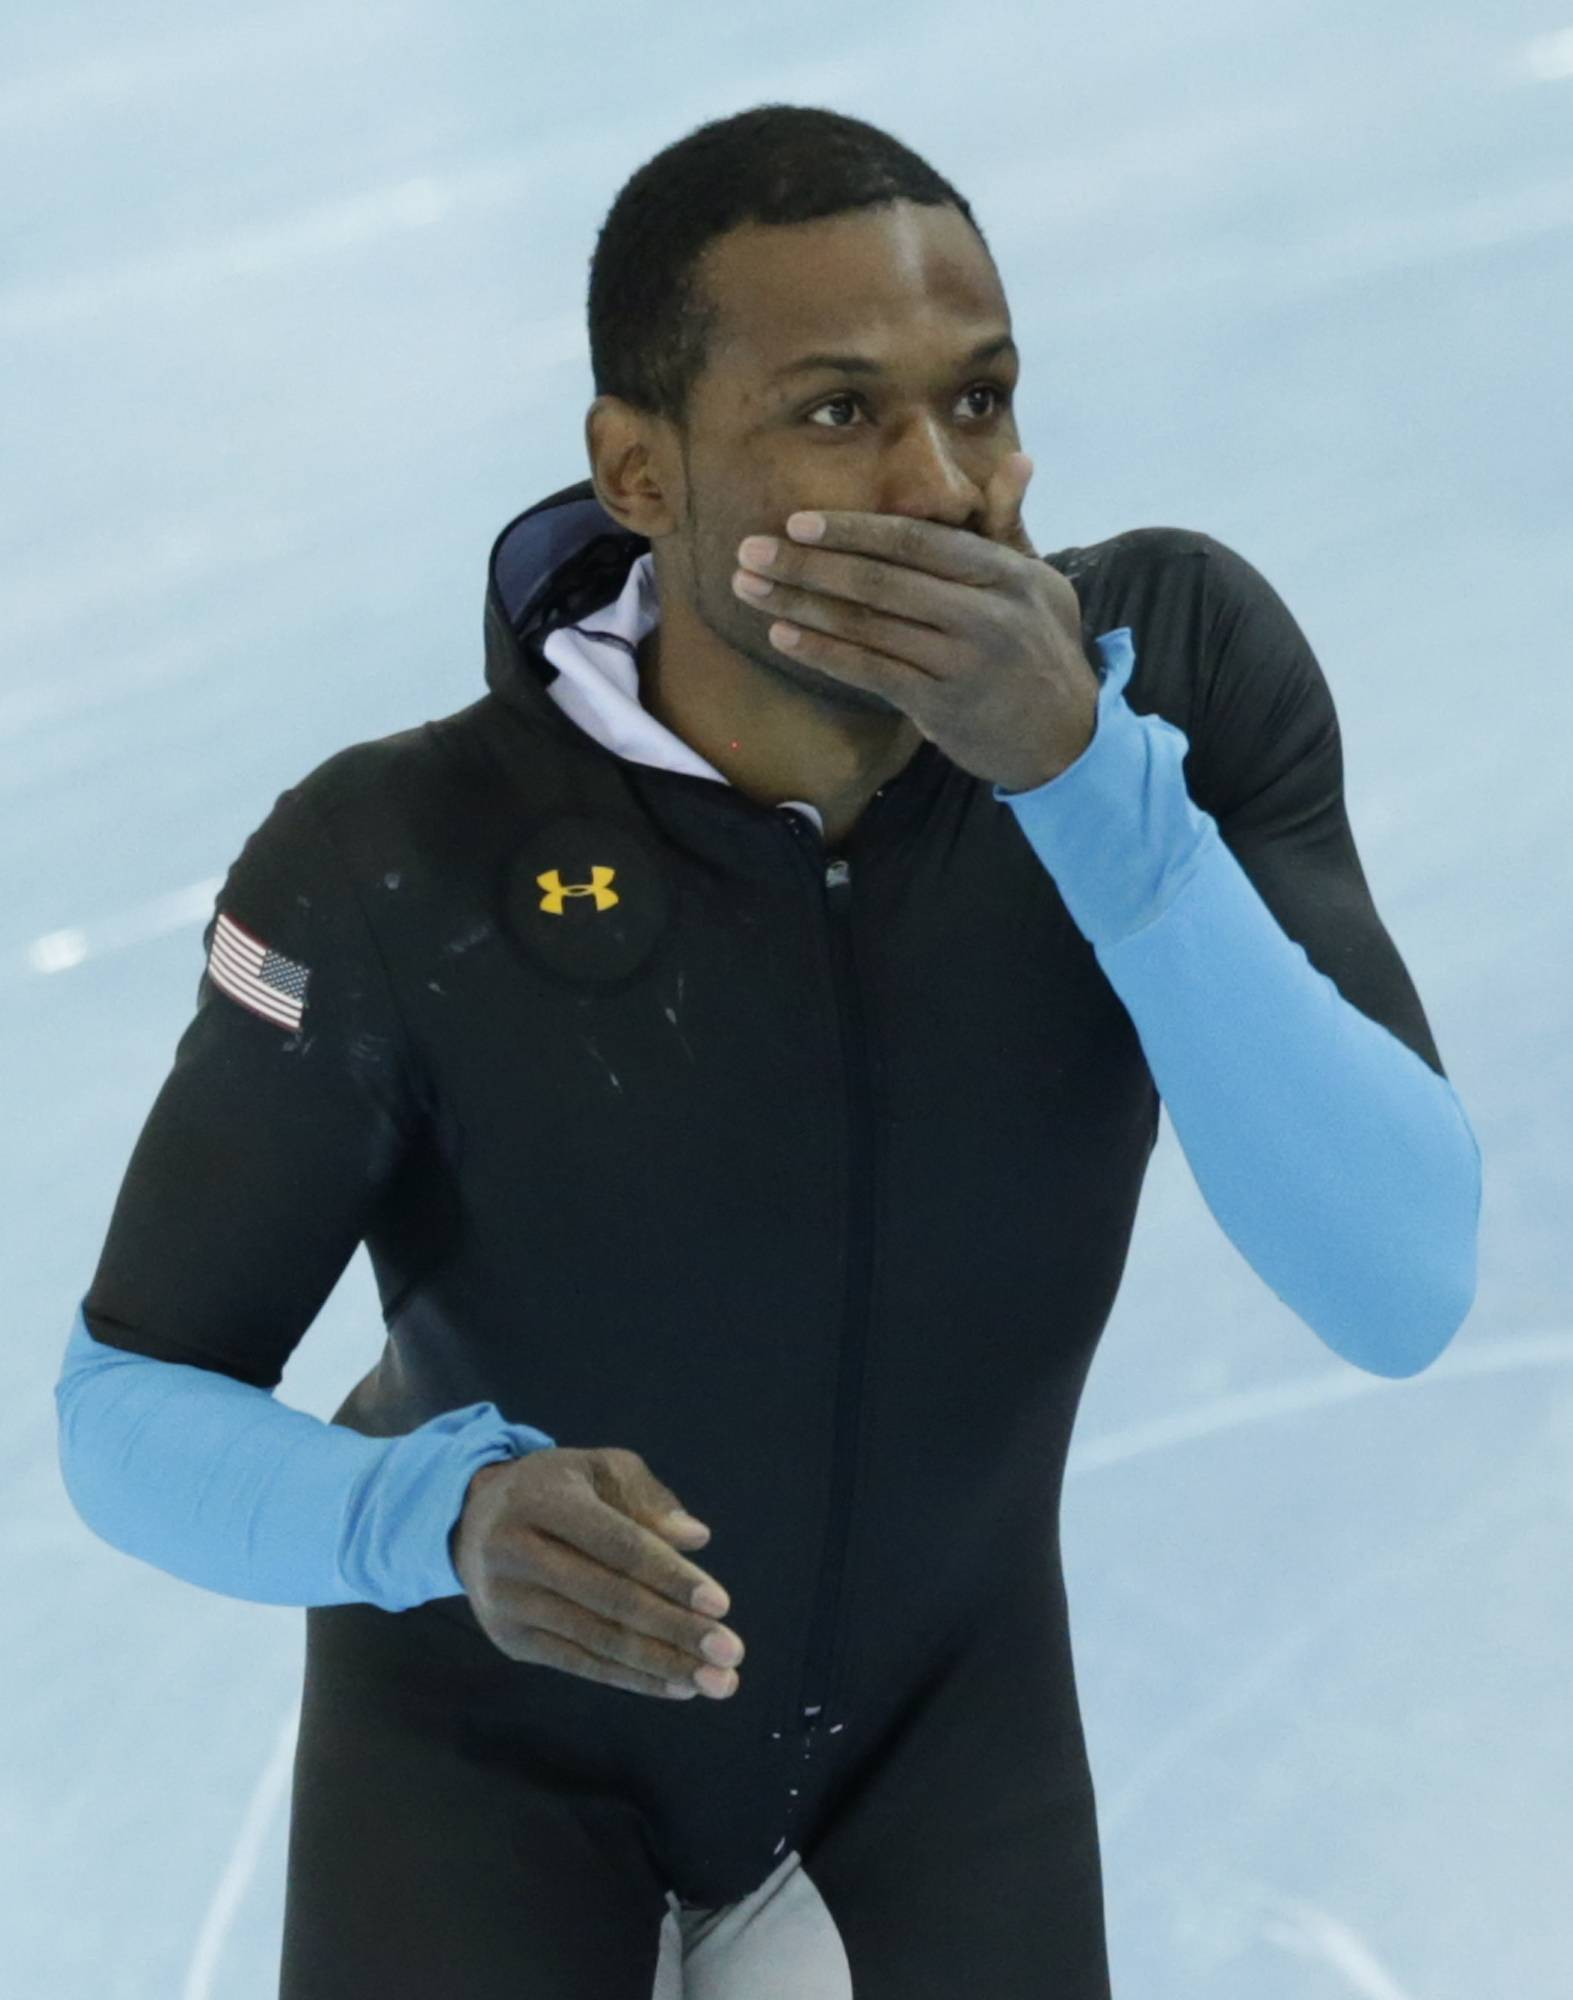 Shani Davis of the U.S. covers his mouth after  competing in the men's 1,500-meter speedskating race at the Adler Arena Skating Center during the 2014 Winter Olympics in Sochi, Russia, Saturday, Feb. 15, 2014.